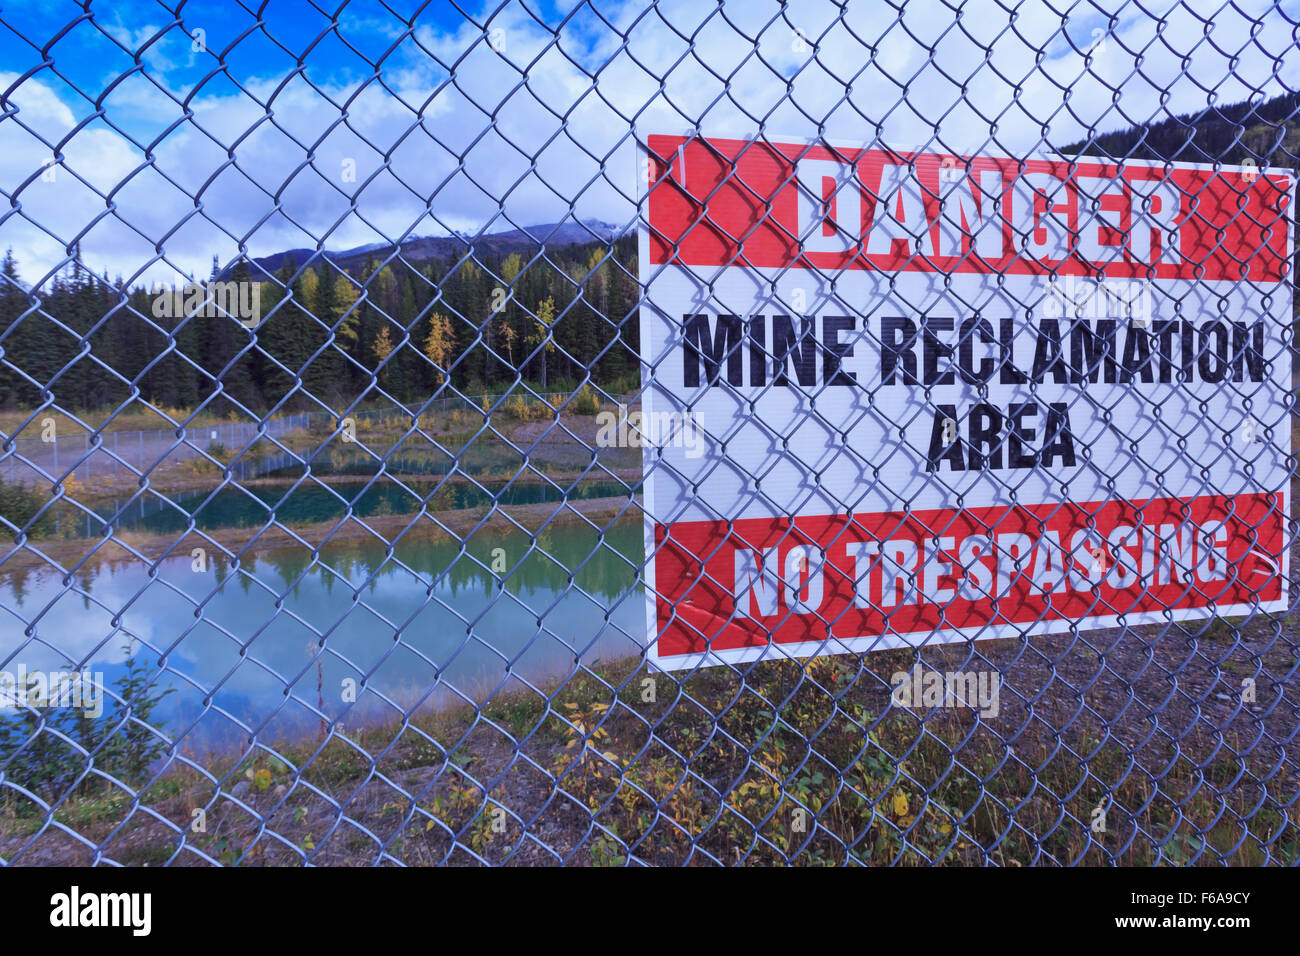 Duthie Mine reclamation site, near Smithers, British Columbia - Stock Image